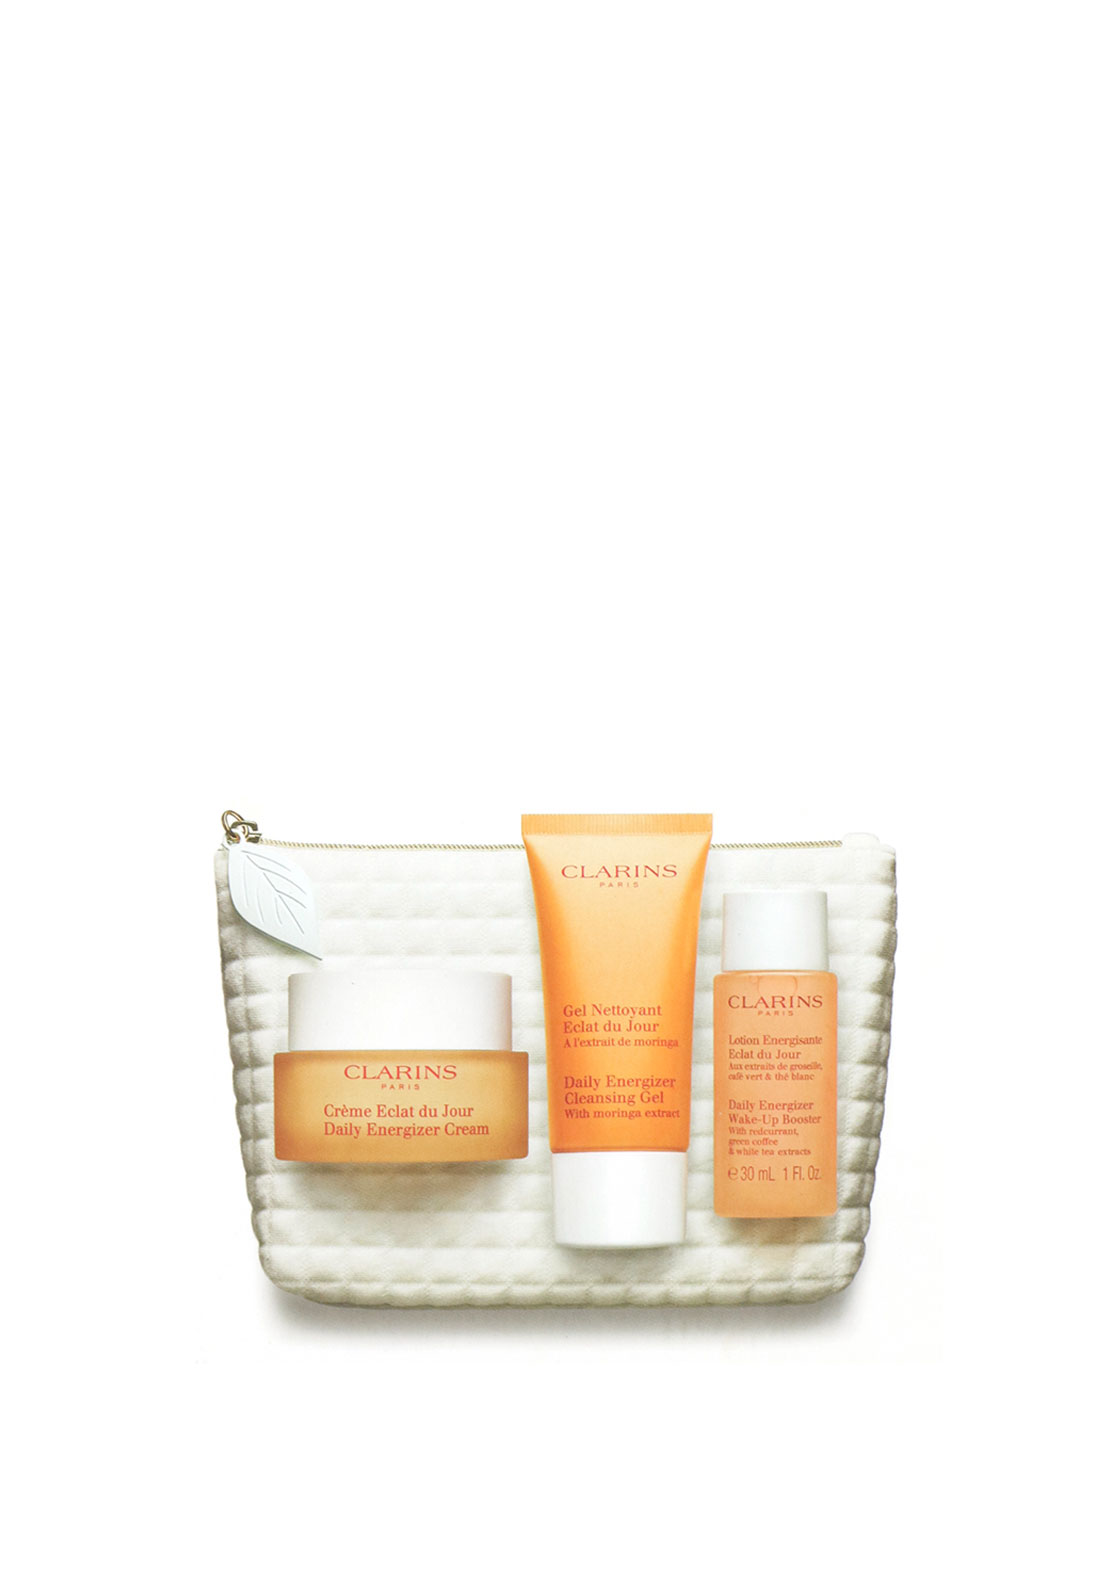 Clarins Christmas 'Moisturize, Energize Revive 'Gift Set